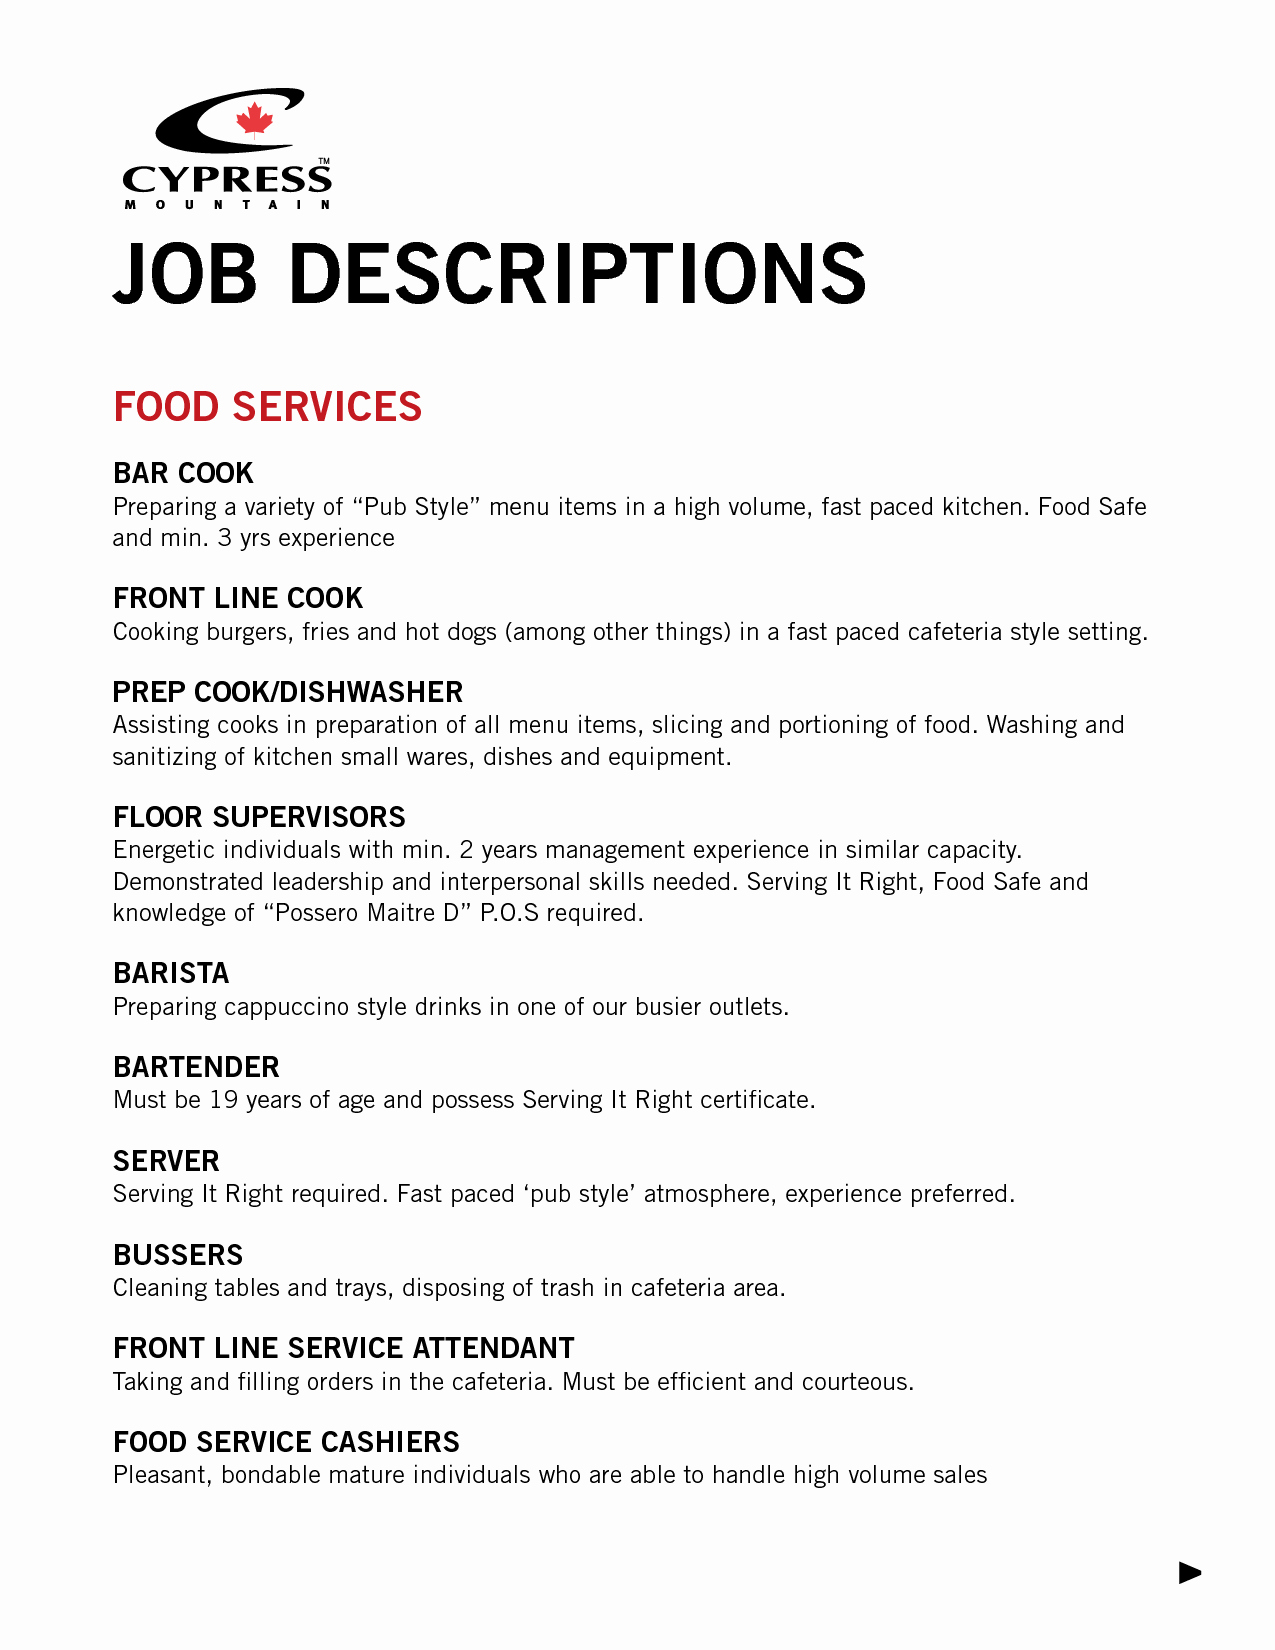 Food Service Resume Template Unique Food Service Worker Job Description Resume Resume Ideas